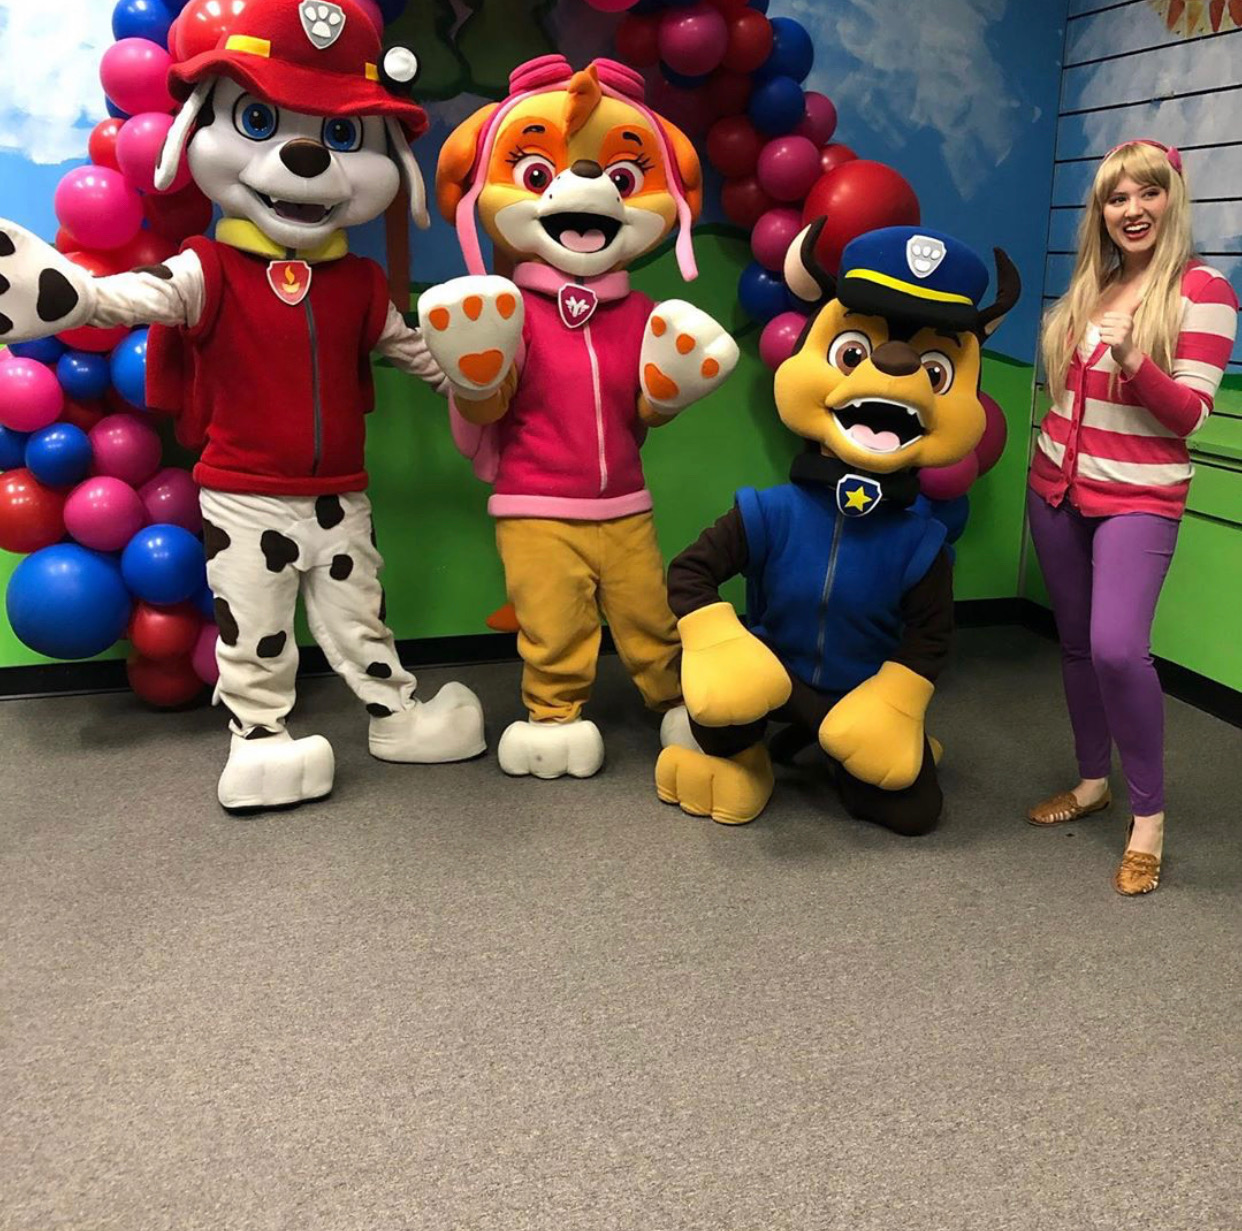 Puppies from Paw Patrol for hire